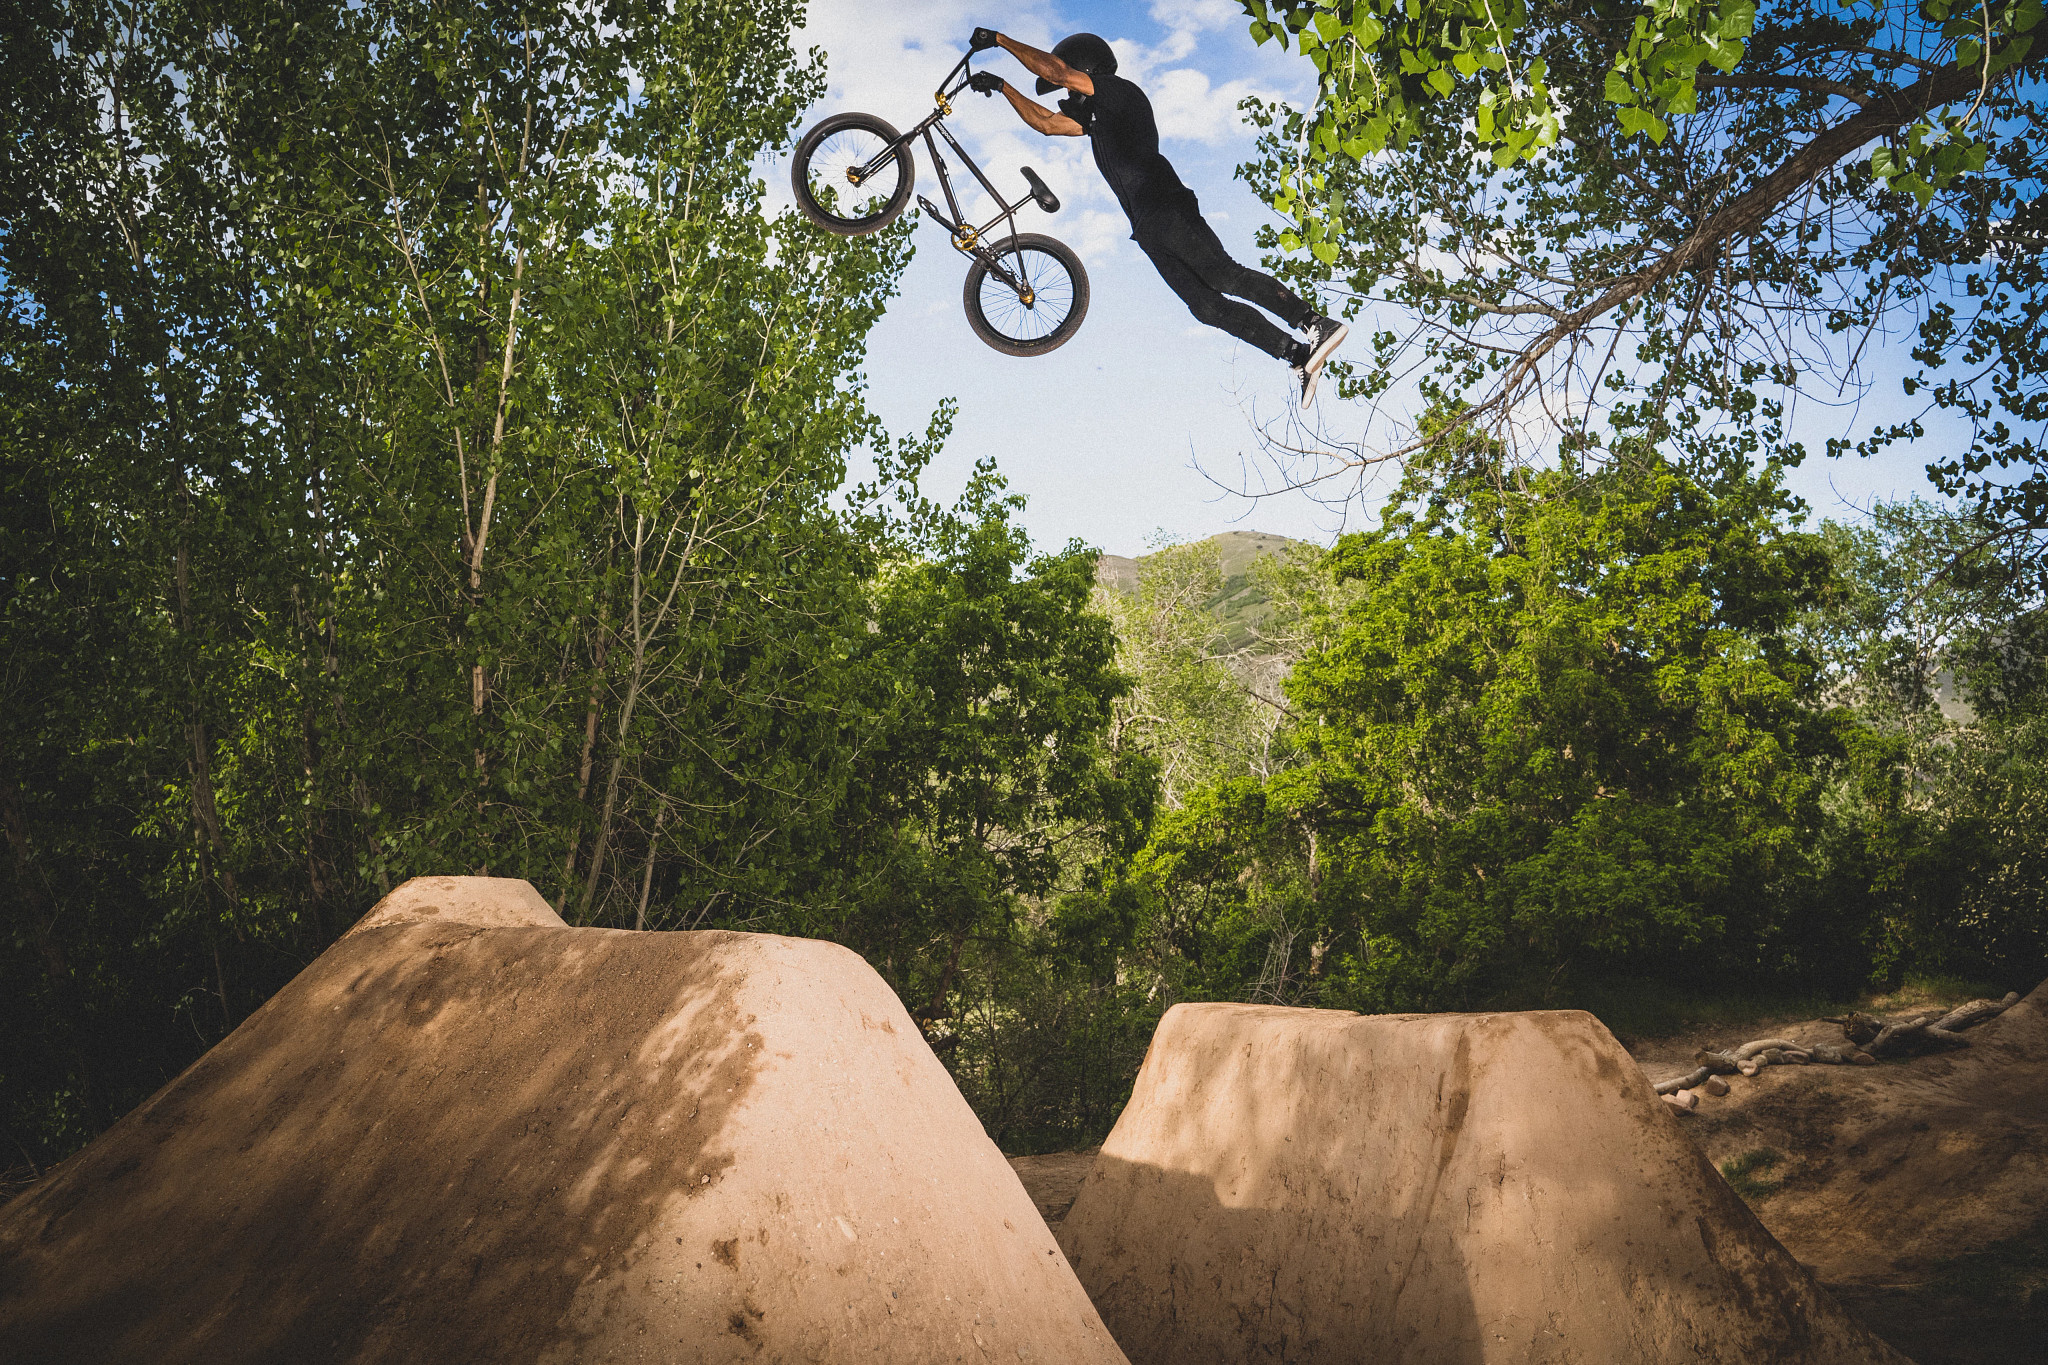 athlete pulling BMX stunt midair with legs out